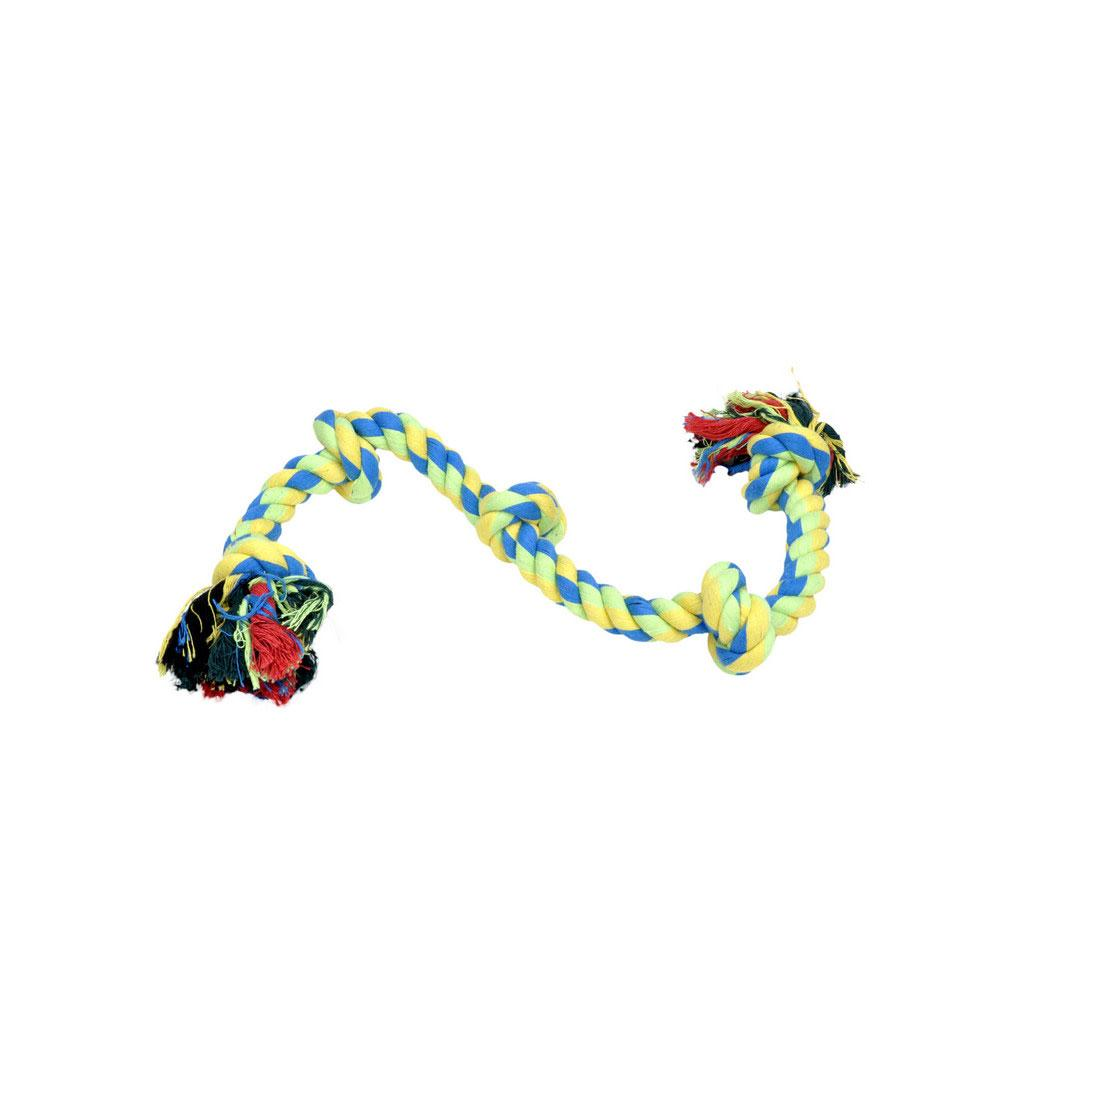 Rascals 5 Knot Rope Tug Dog Toy, Yellow, 26-in